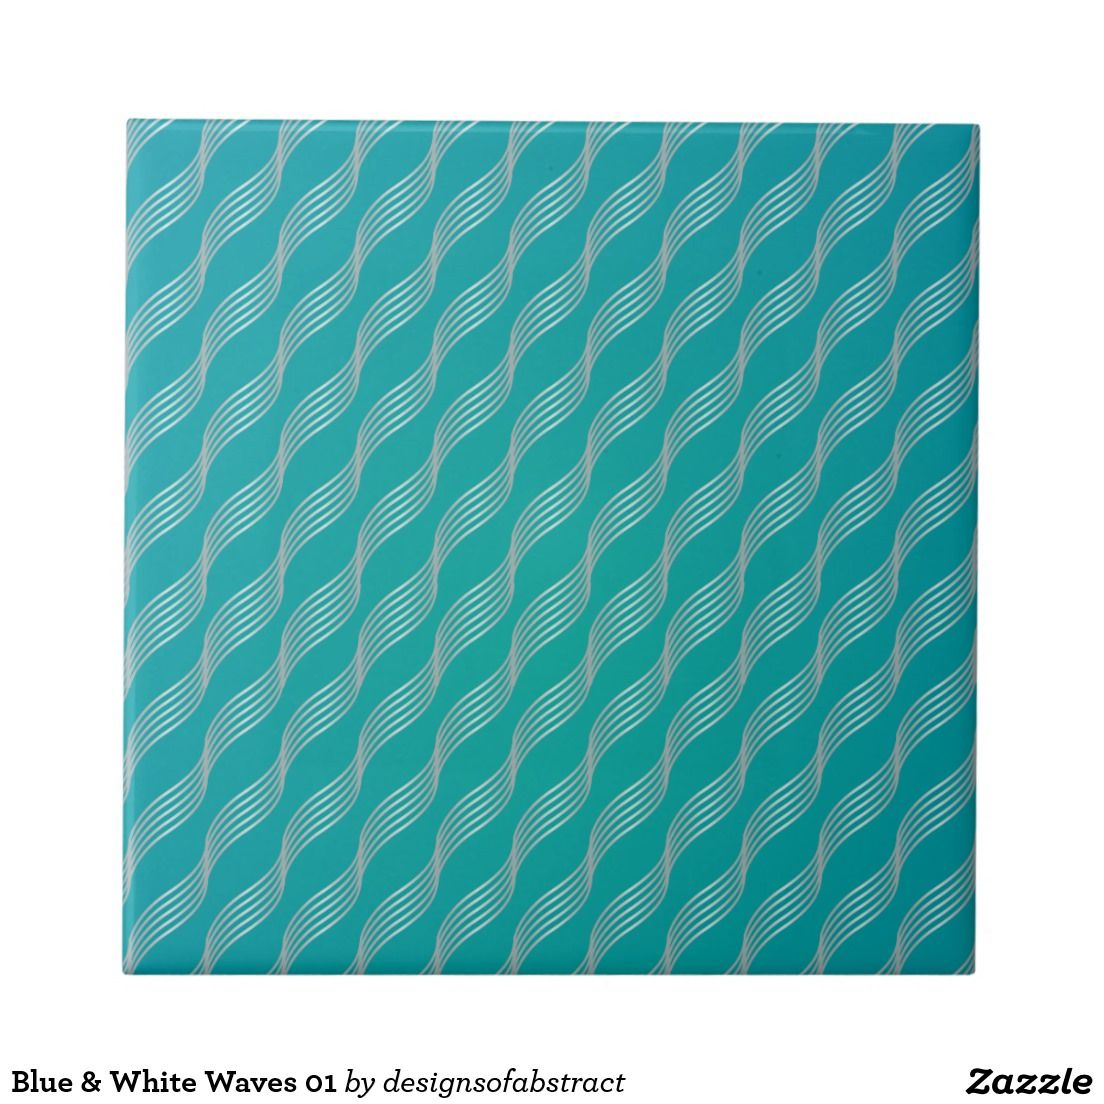 Blue & White Waves 01 Small Square Tile